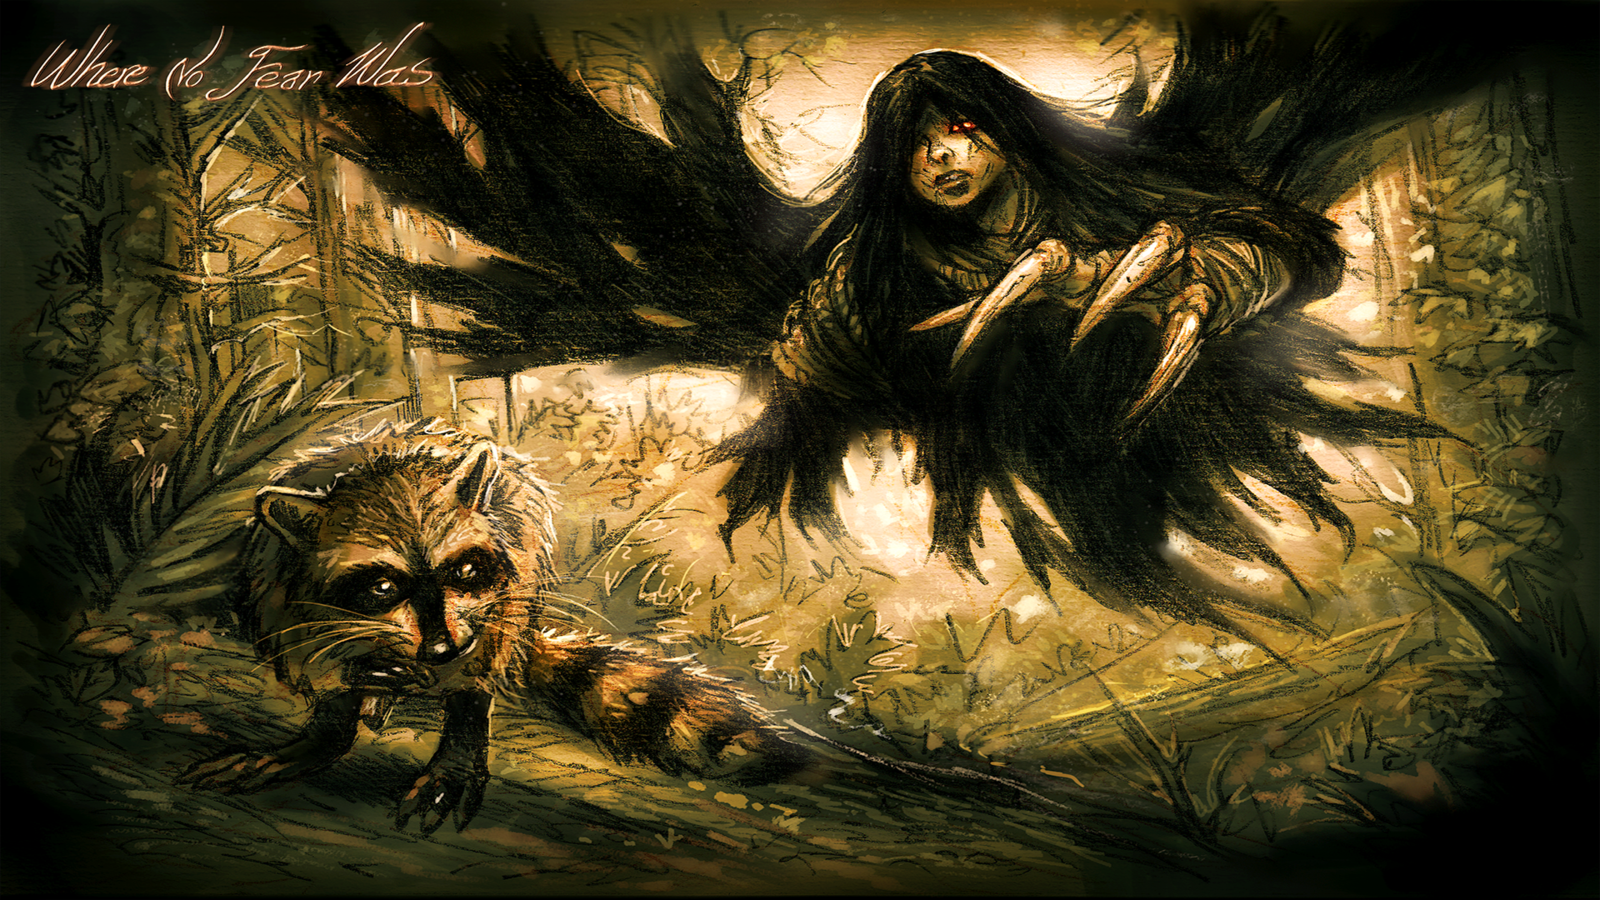 Where No Fear Was   PC game  Wallpaper by mlappas 1600x900